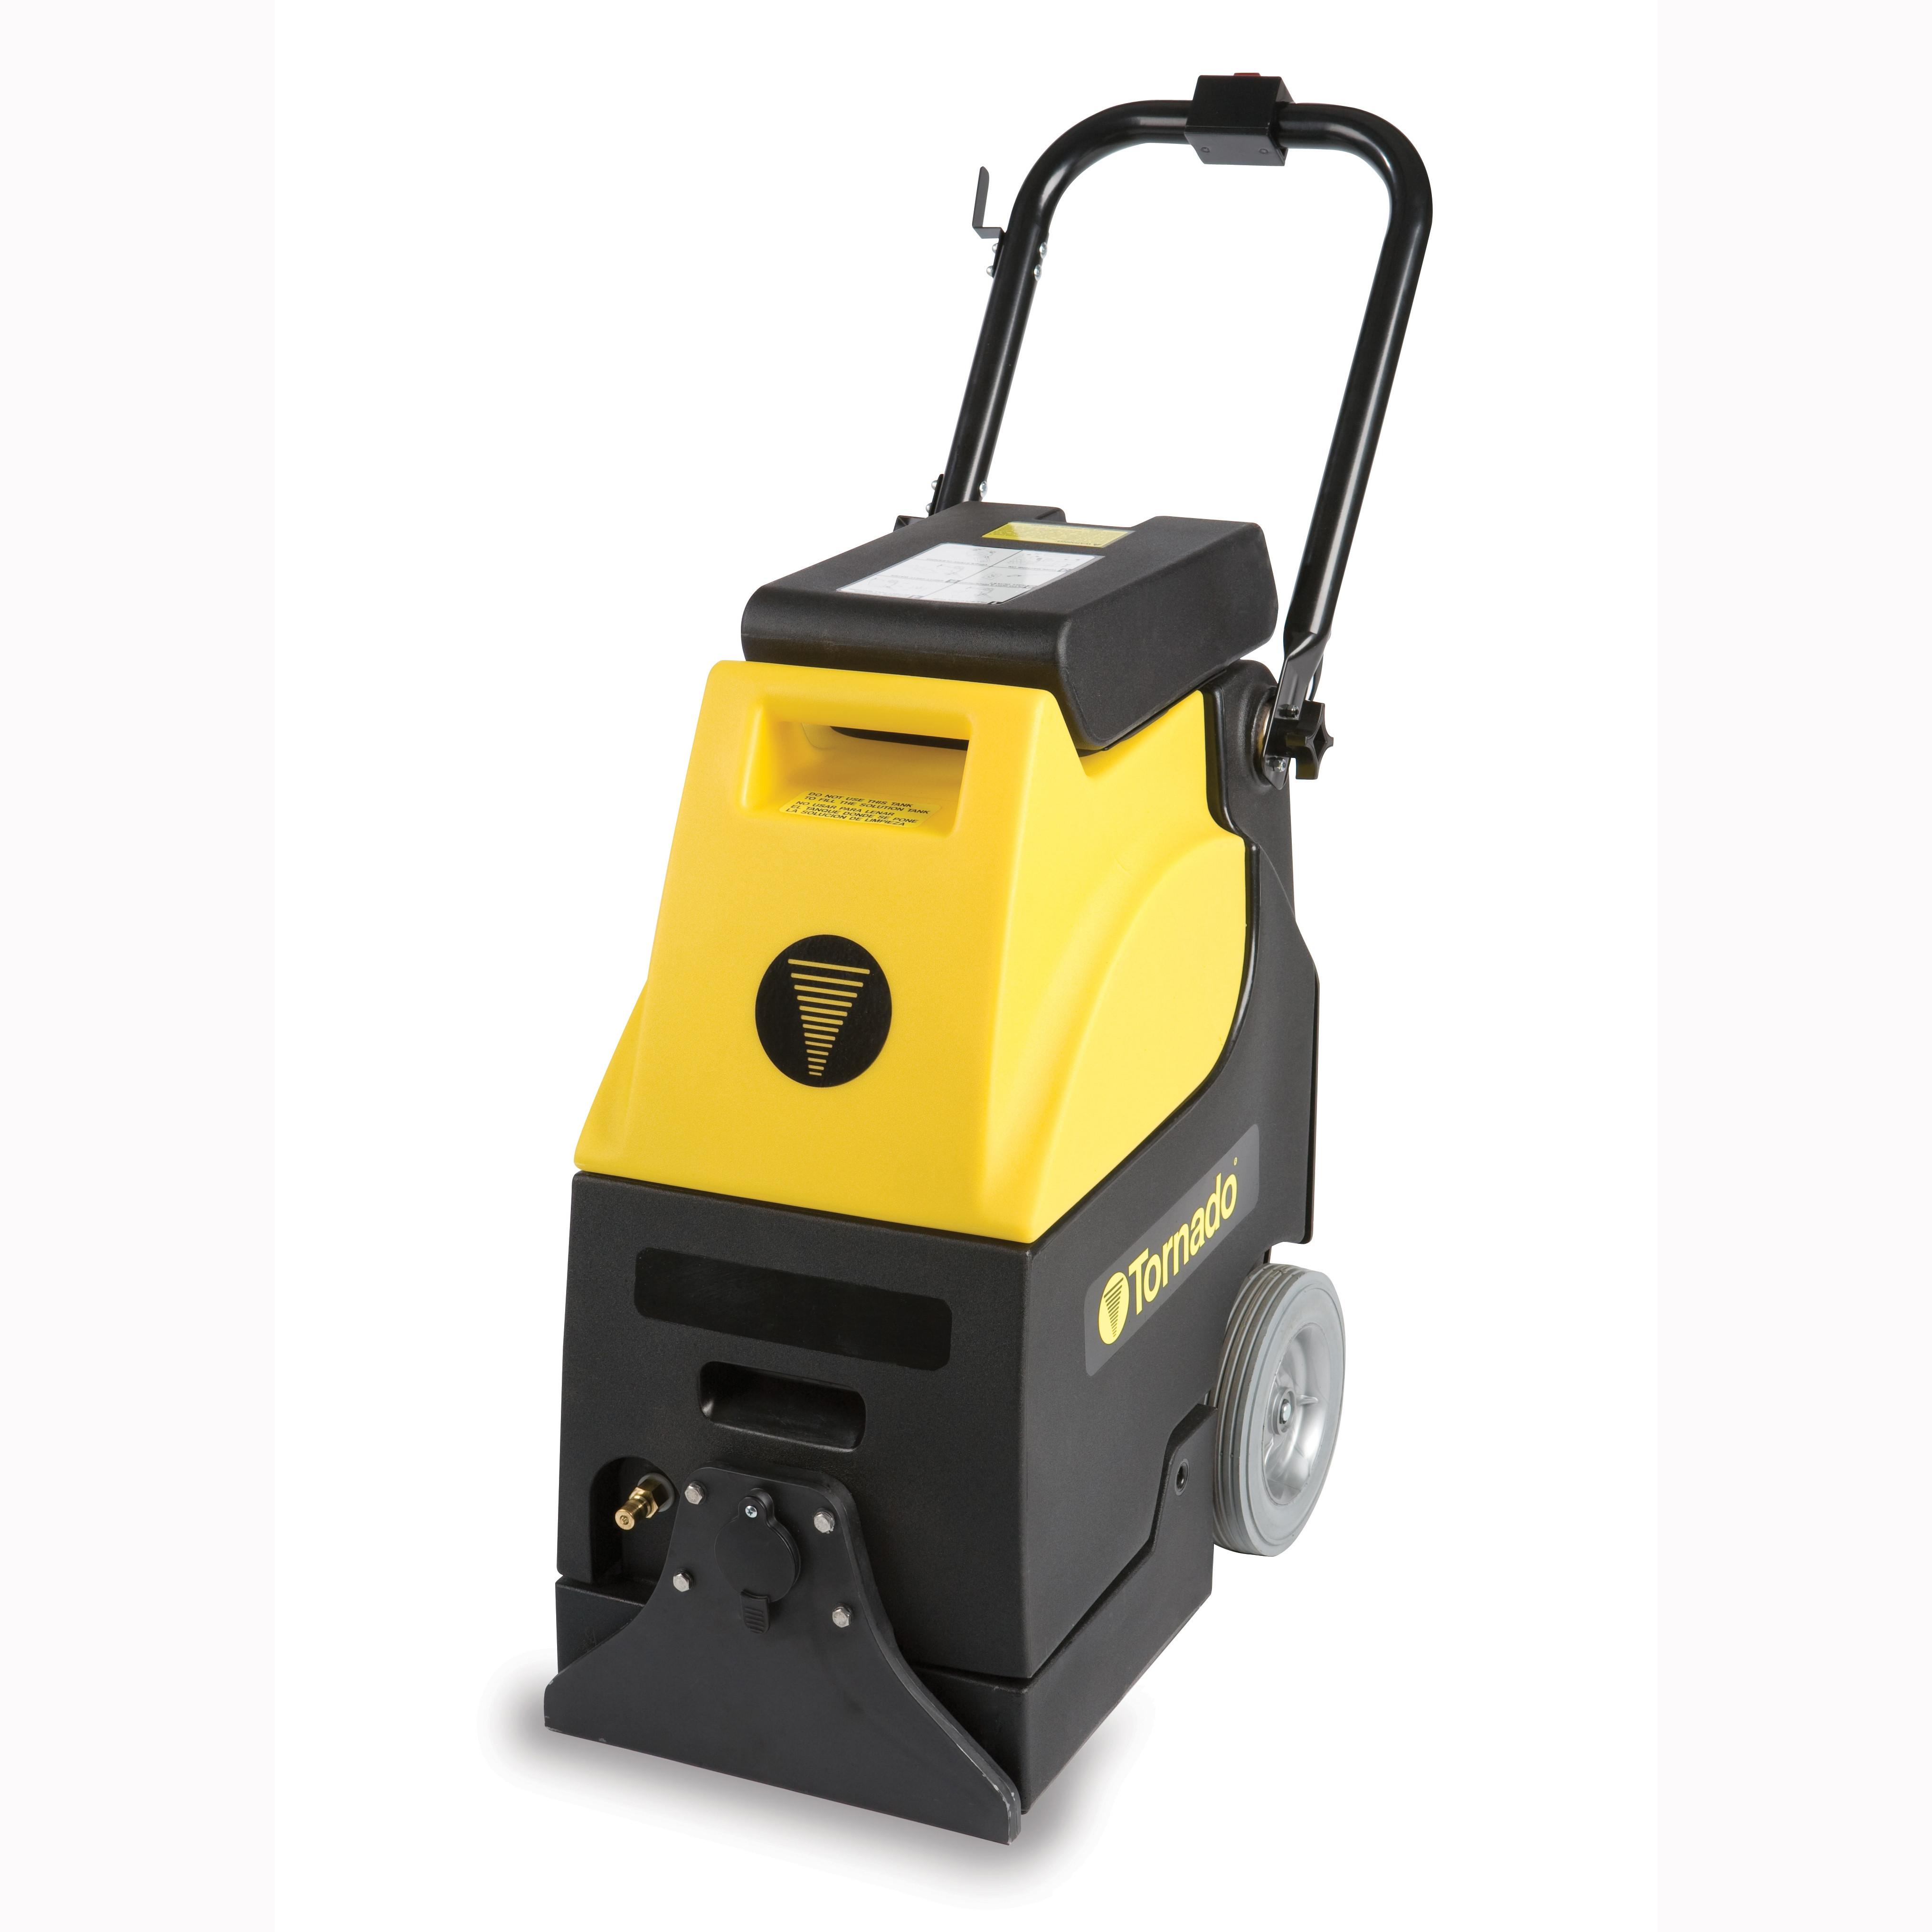 Tornado Mini-Marathon 425 Carpet Extractor